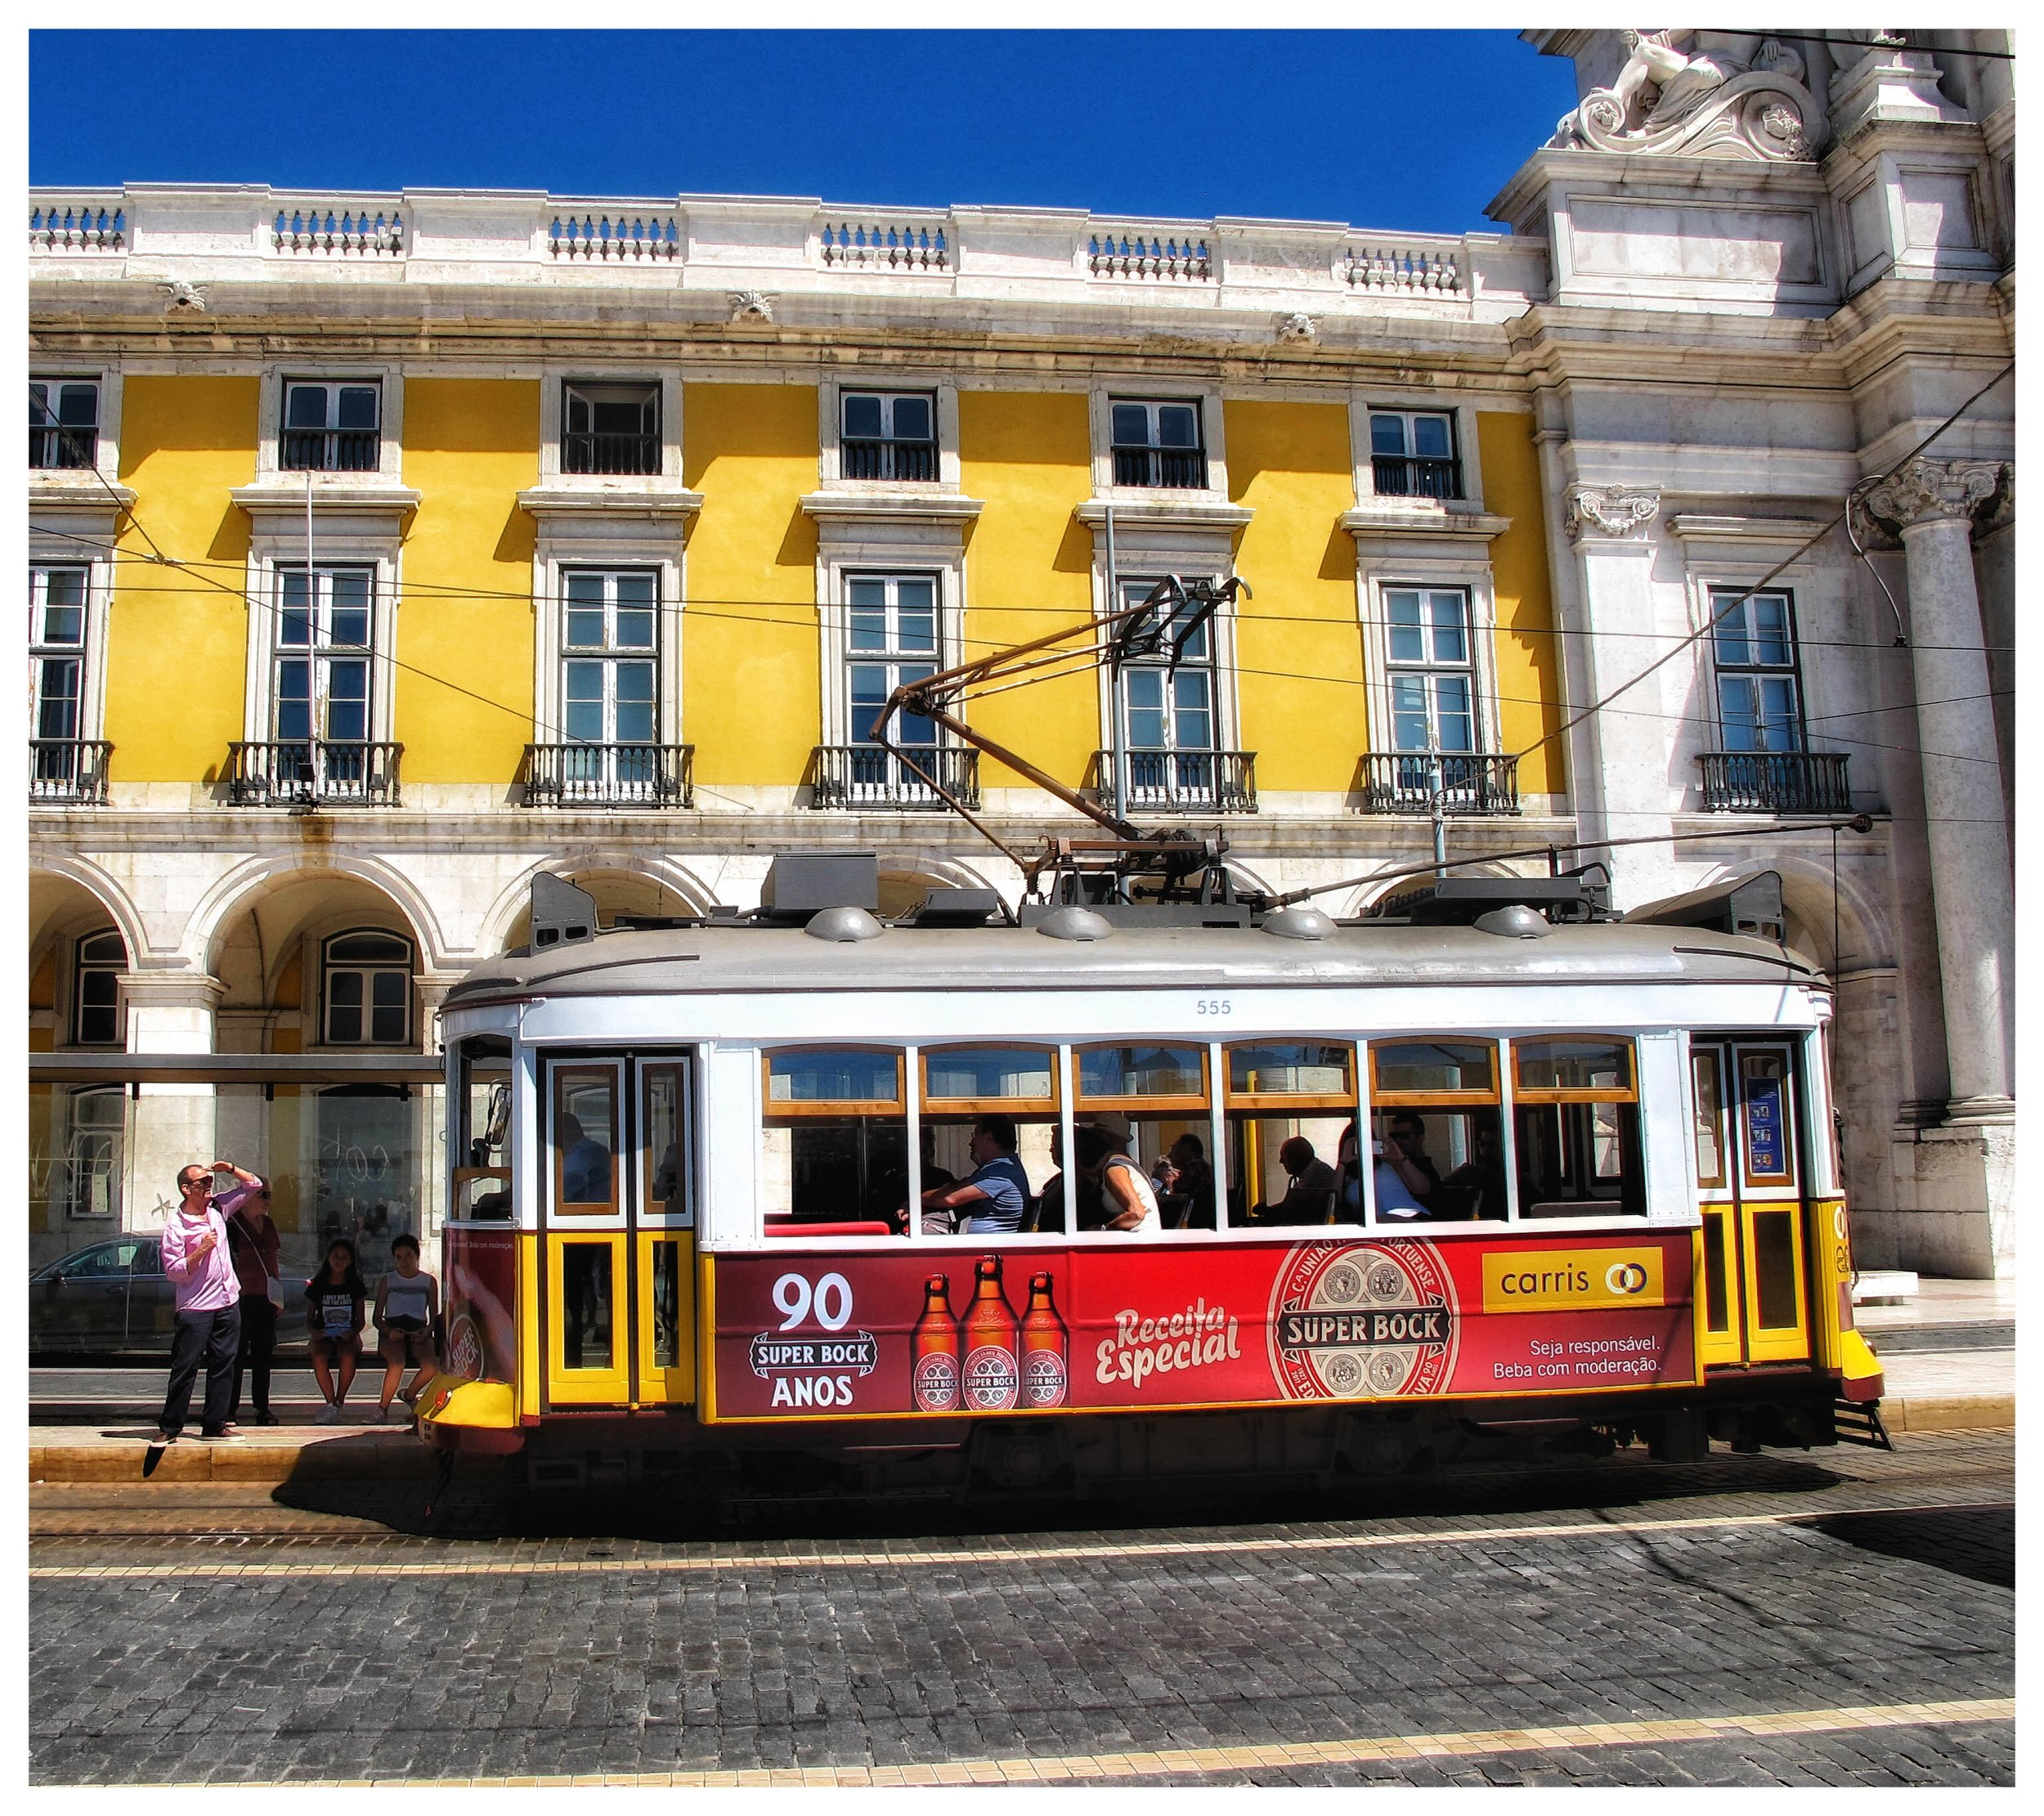 Real Time in Lisbon too